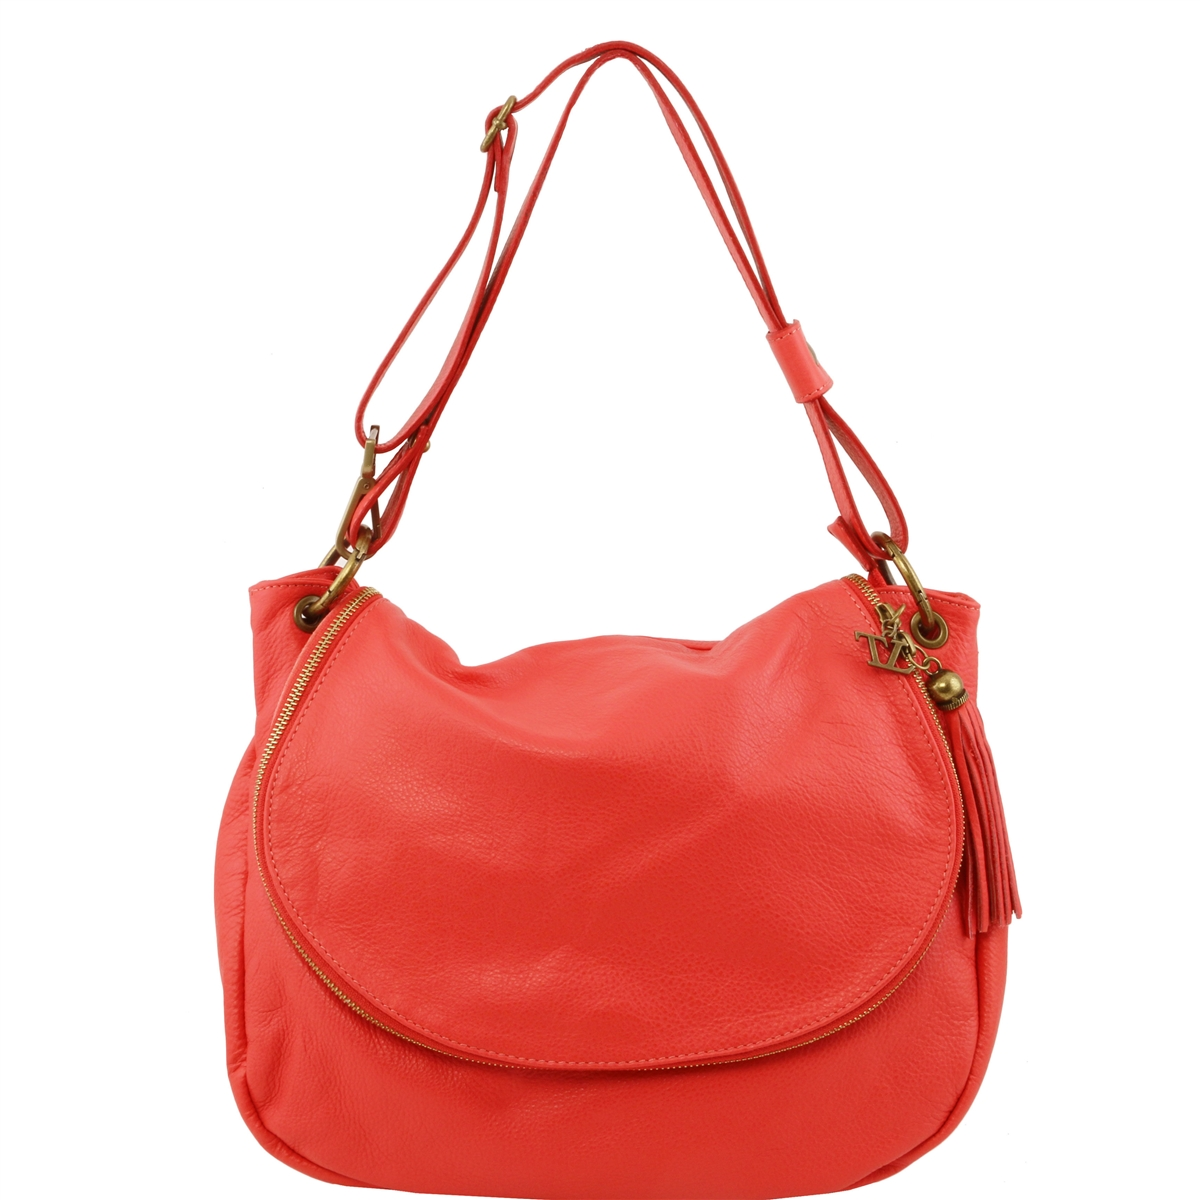 2b6ba24d1cb4 Tuscany Leather TL141110 Shoulder Bag - Coral